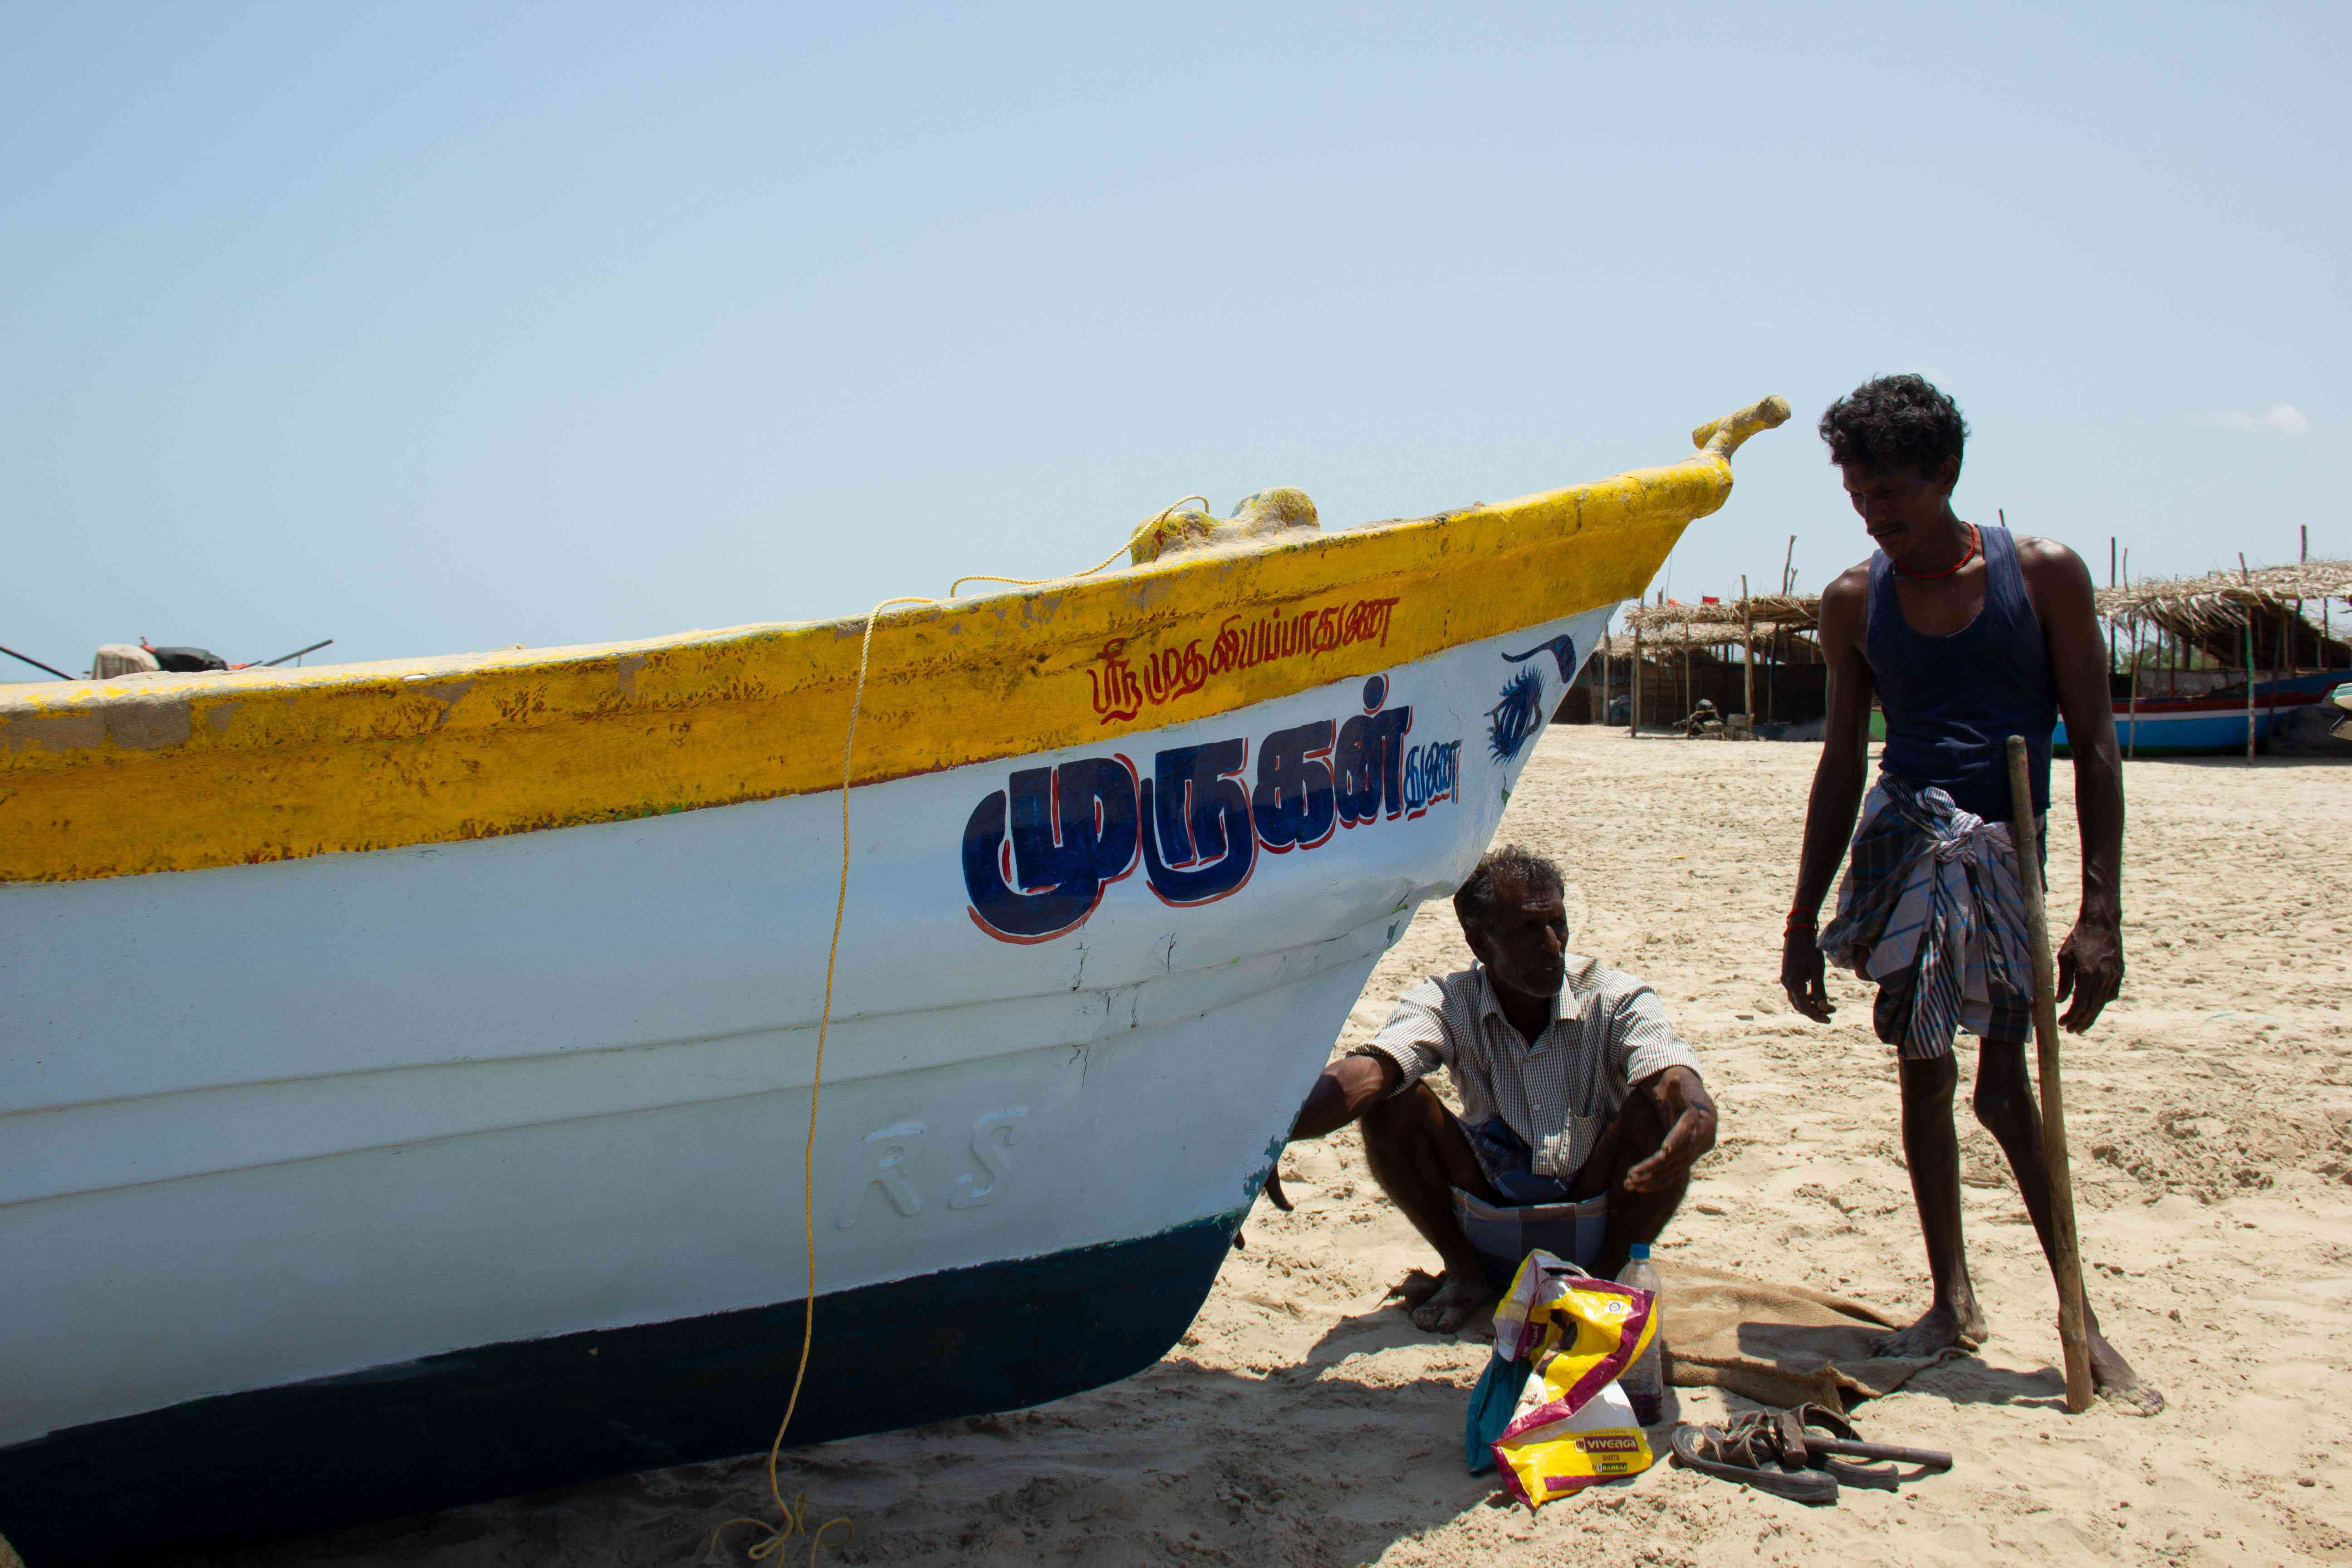 Sakthivelan K, who owns a fibre boat, inspects his damaged boat after finishing minor repair works at Arucottuthurai village in Nagapattinam in Tamil Nadu. Photo Credit: M Palanikumar|Pepcollective